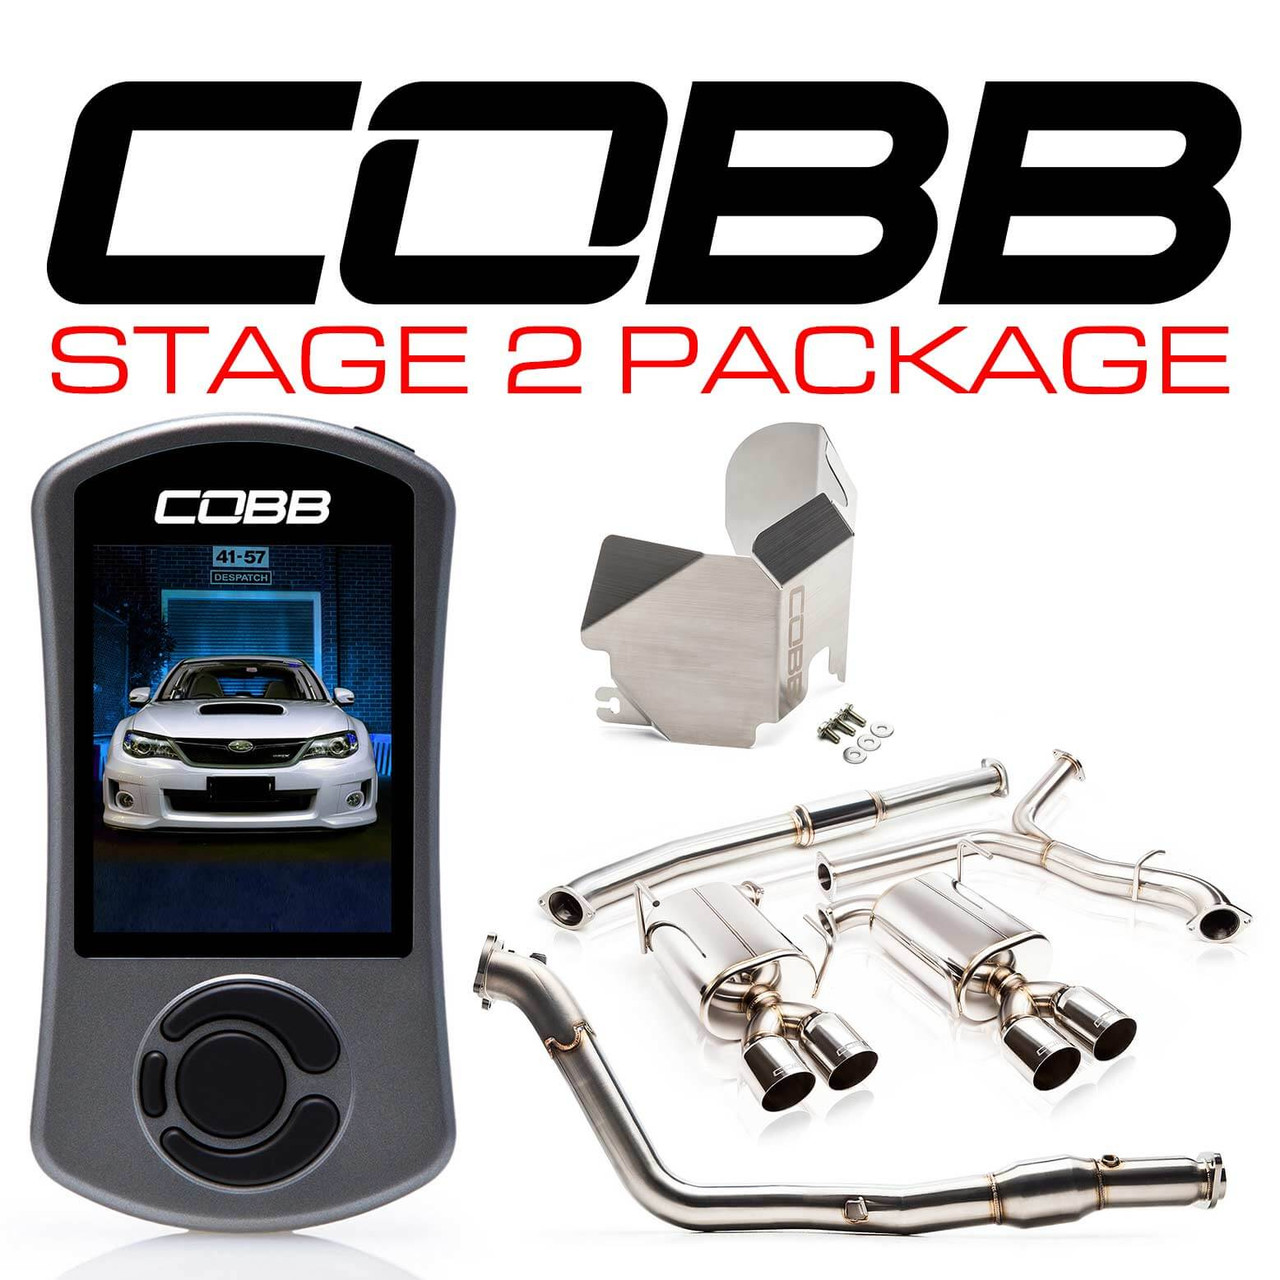 Cobb Stage 2 Power Package For 11 14 Subaru Wrx 615x92 Stage 2 Performance Packages Cobb Performance Parts Genx Performance